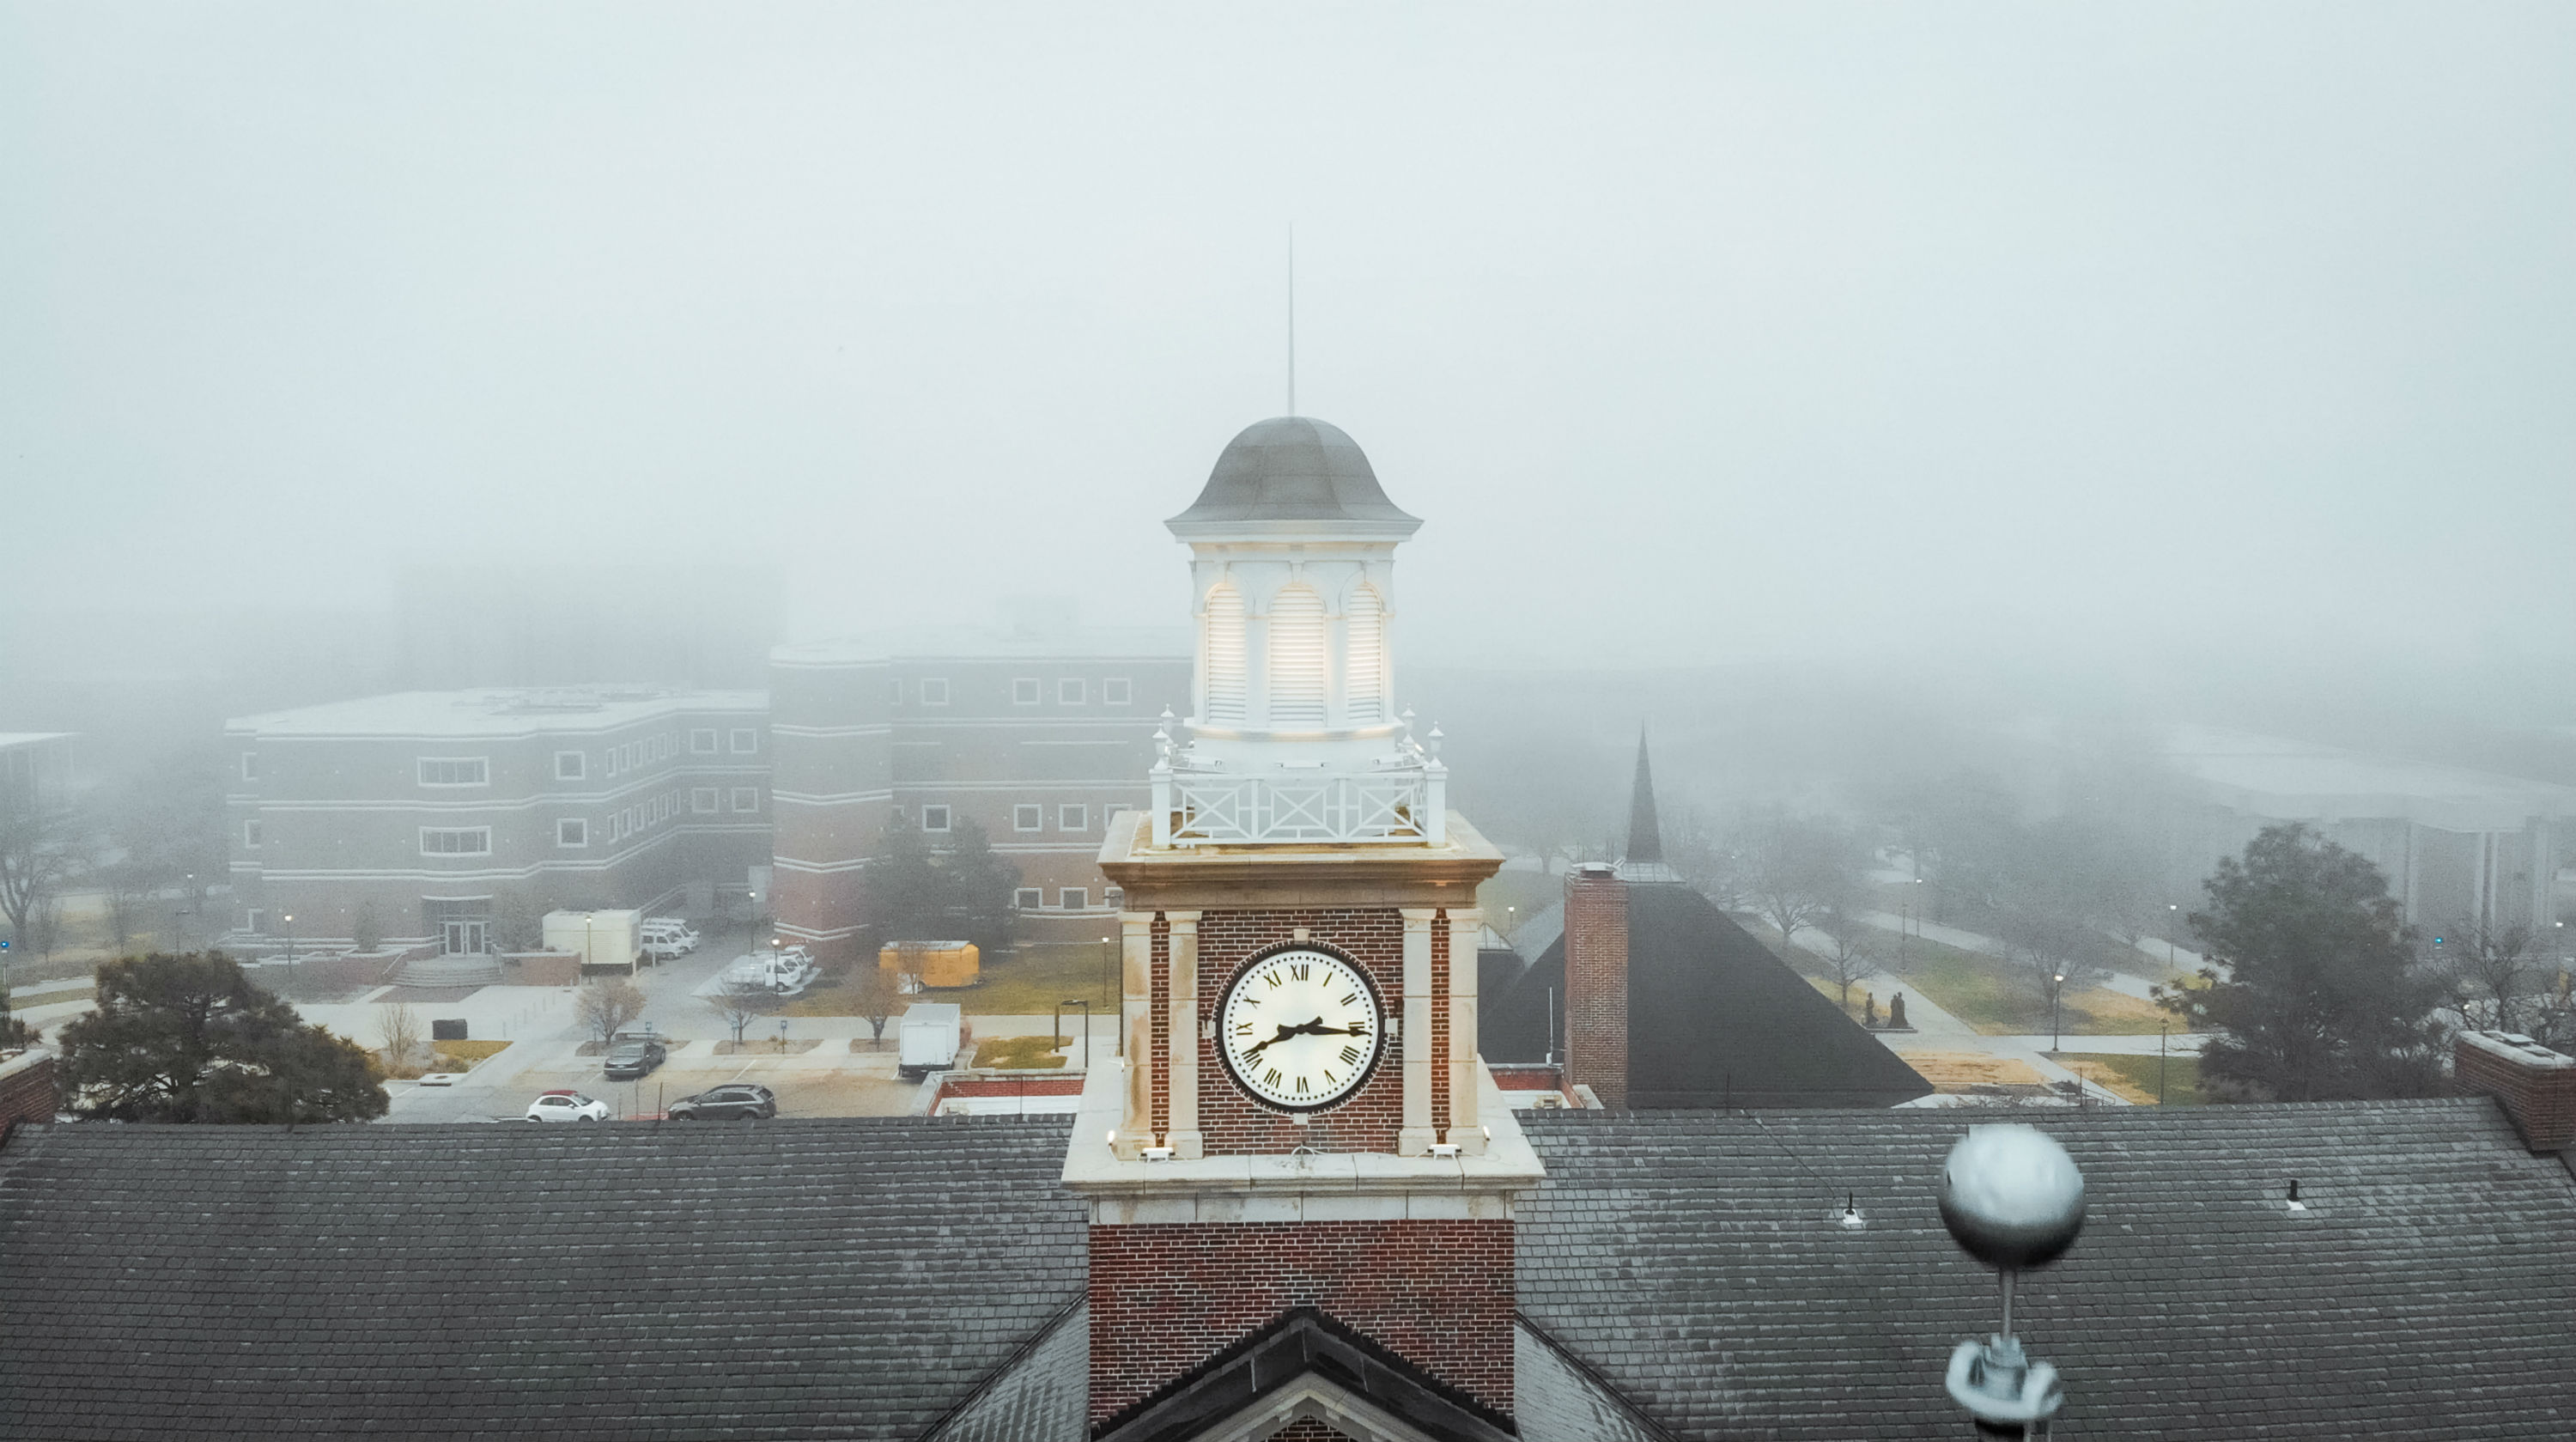 Morrison clocktower